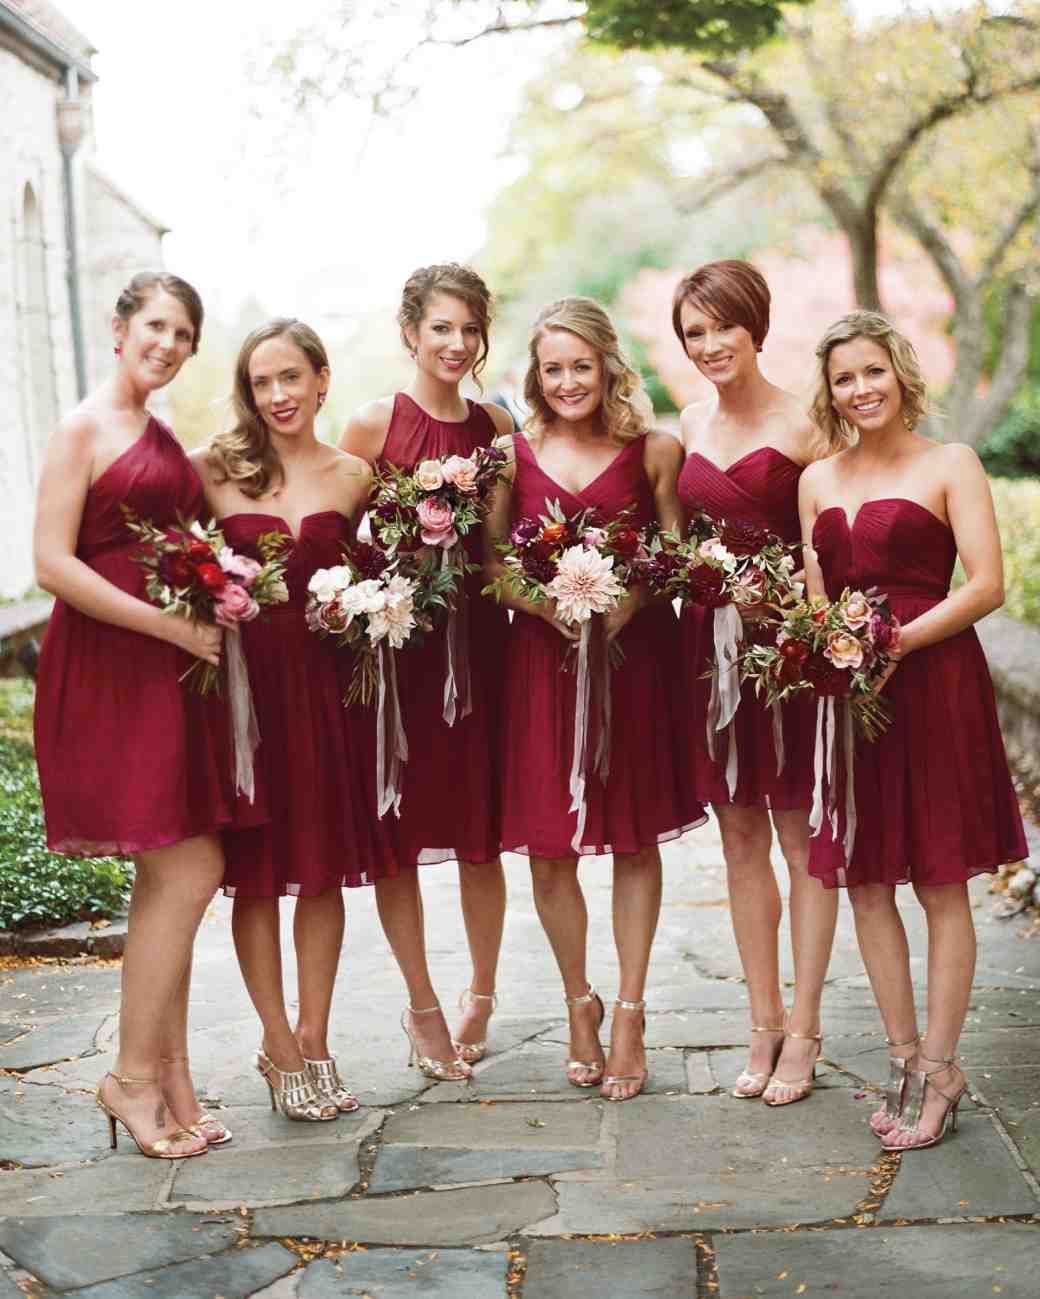 41 Reasons to Love the Mismatched Bridesmaids Look | Martha stewart ...